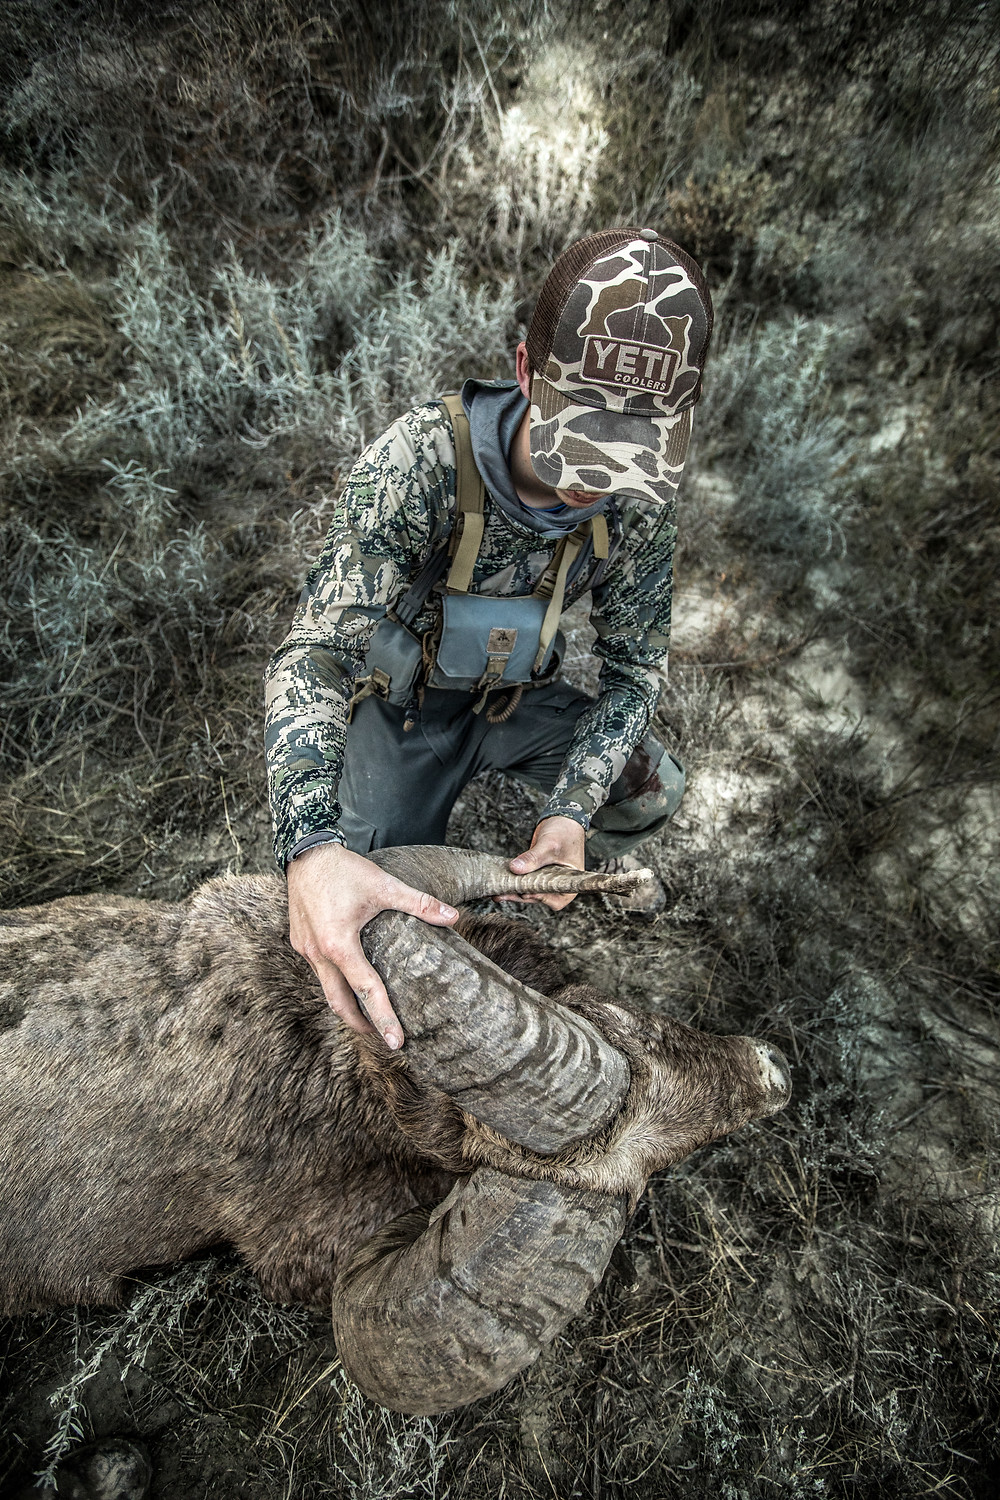 Sheep hunter looking over his once in a lifetime harvest of a bighorn sheep ram wearing Sitka gear camo and a Yeti coolers hat